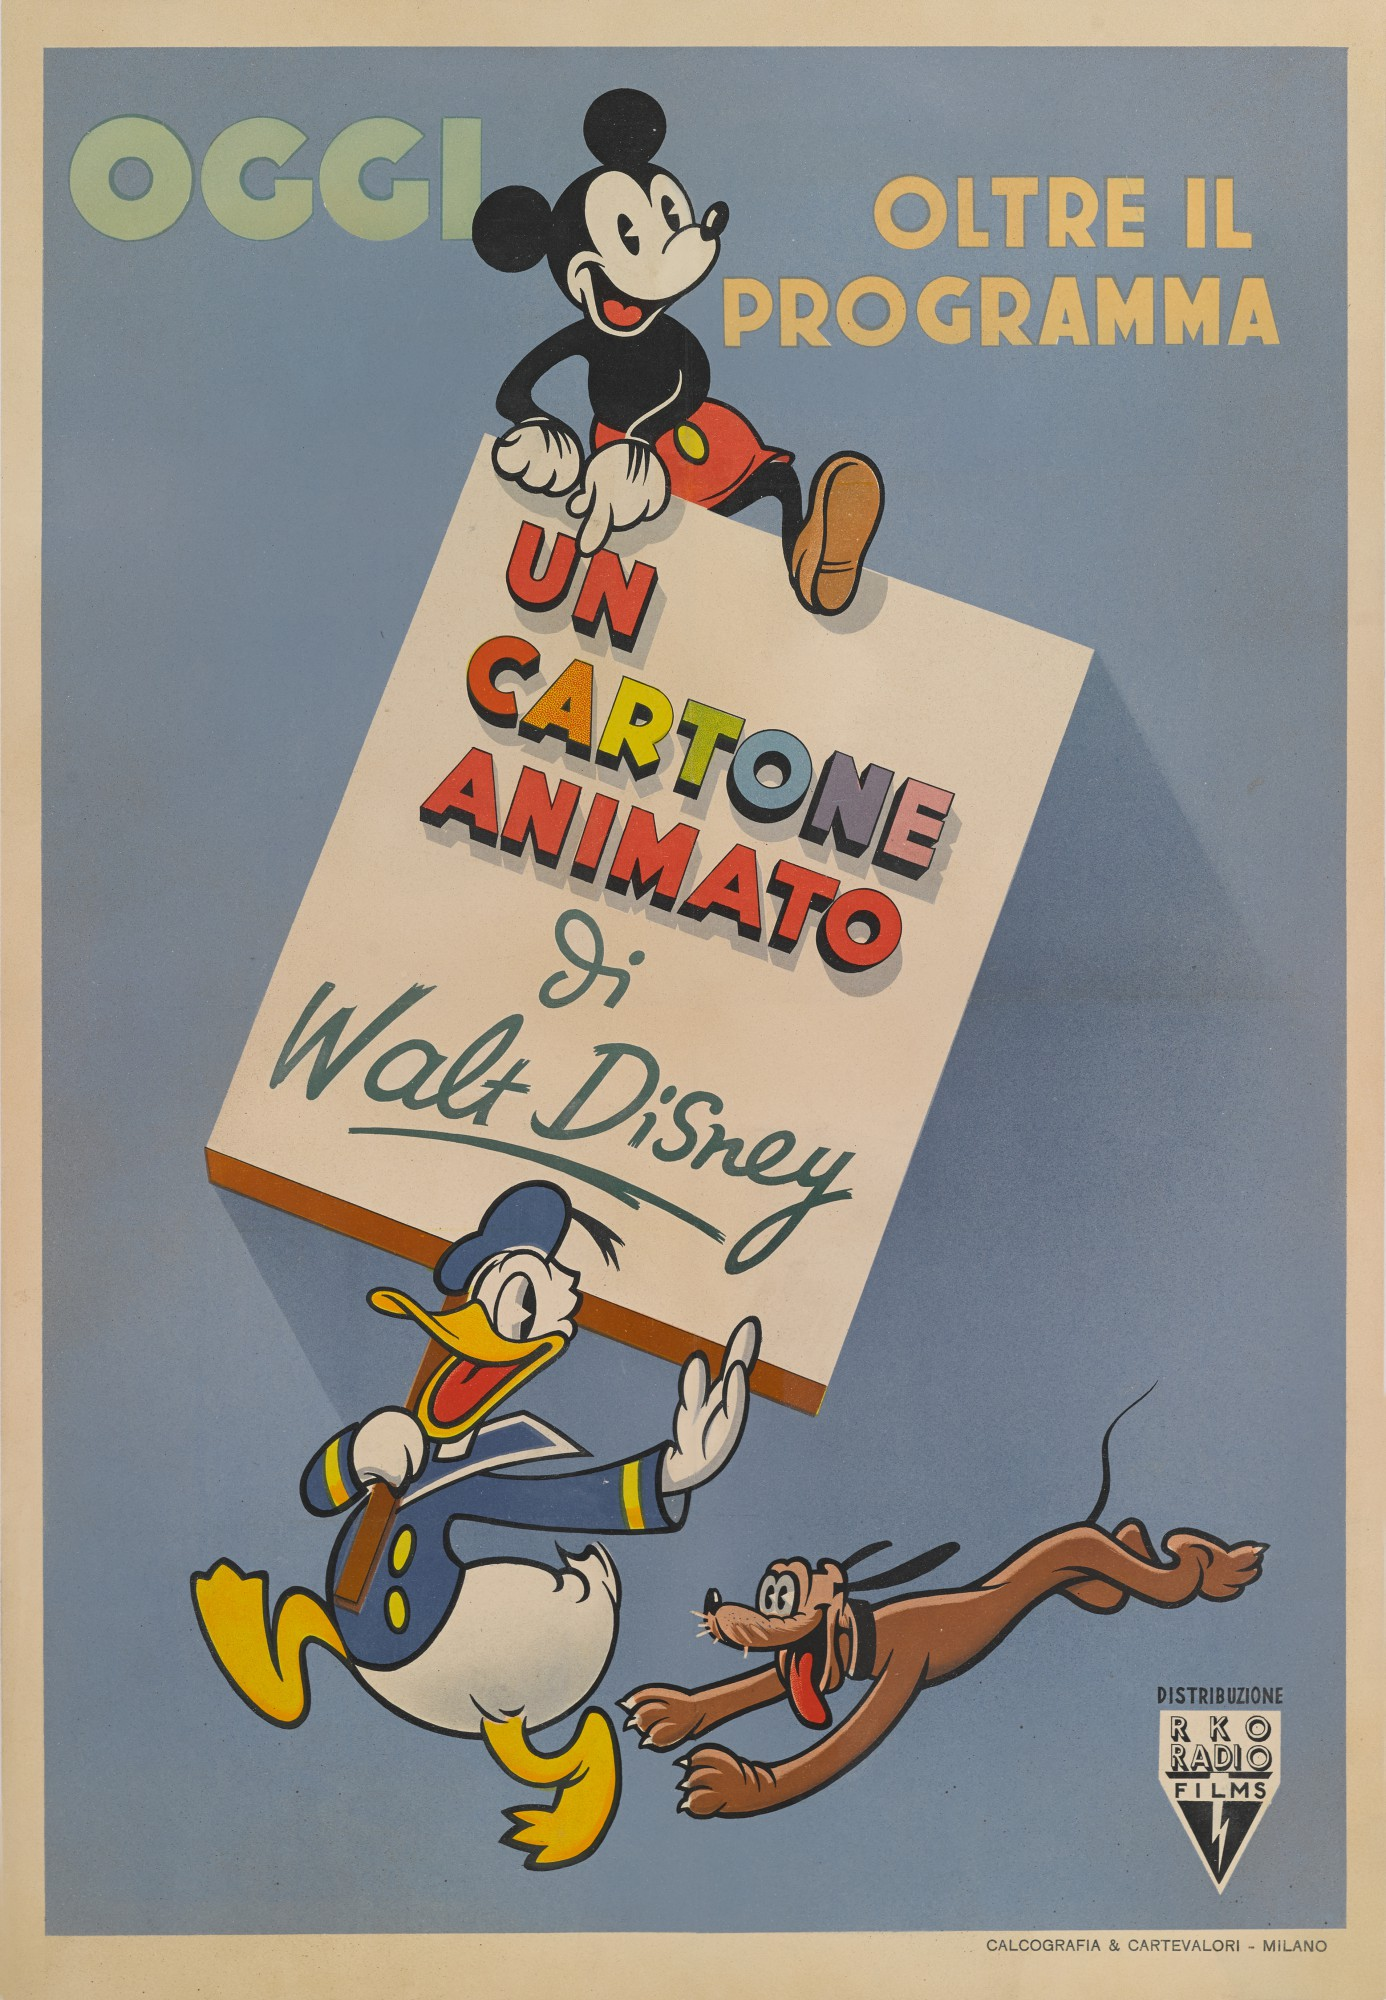 WALT DISNEY ANIMATION / UN CARTONE ANIMATO (1940'S) POSTER, ITALIAN